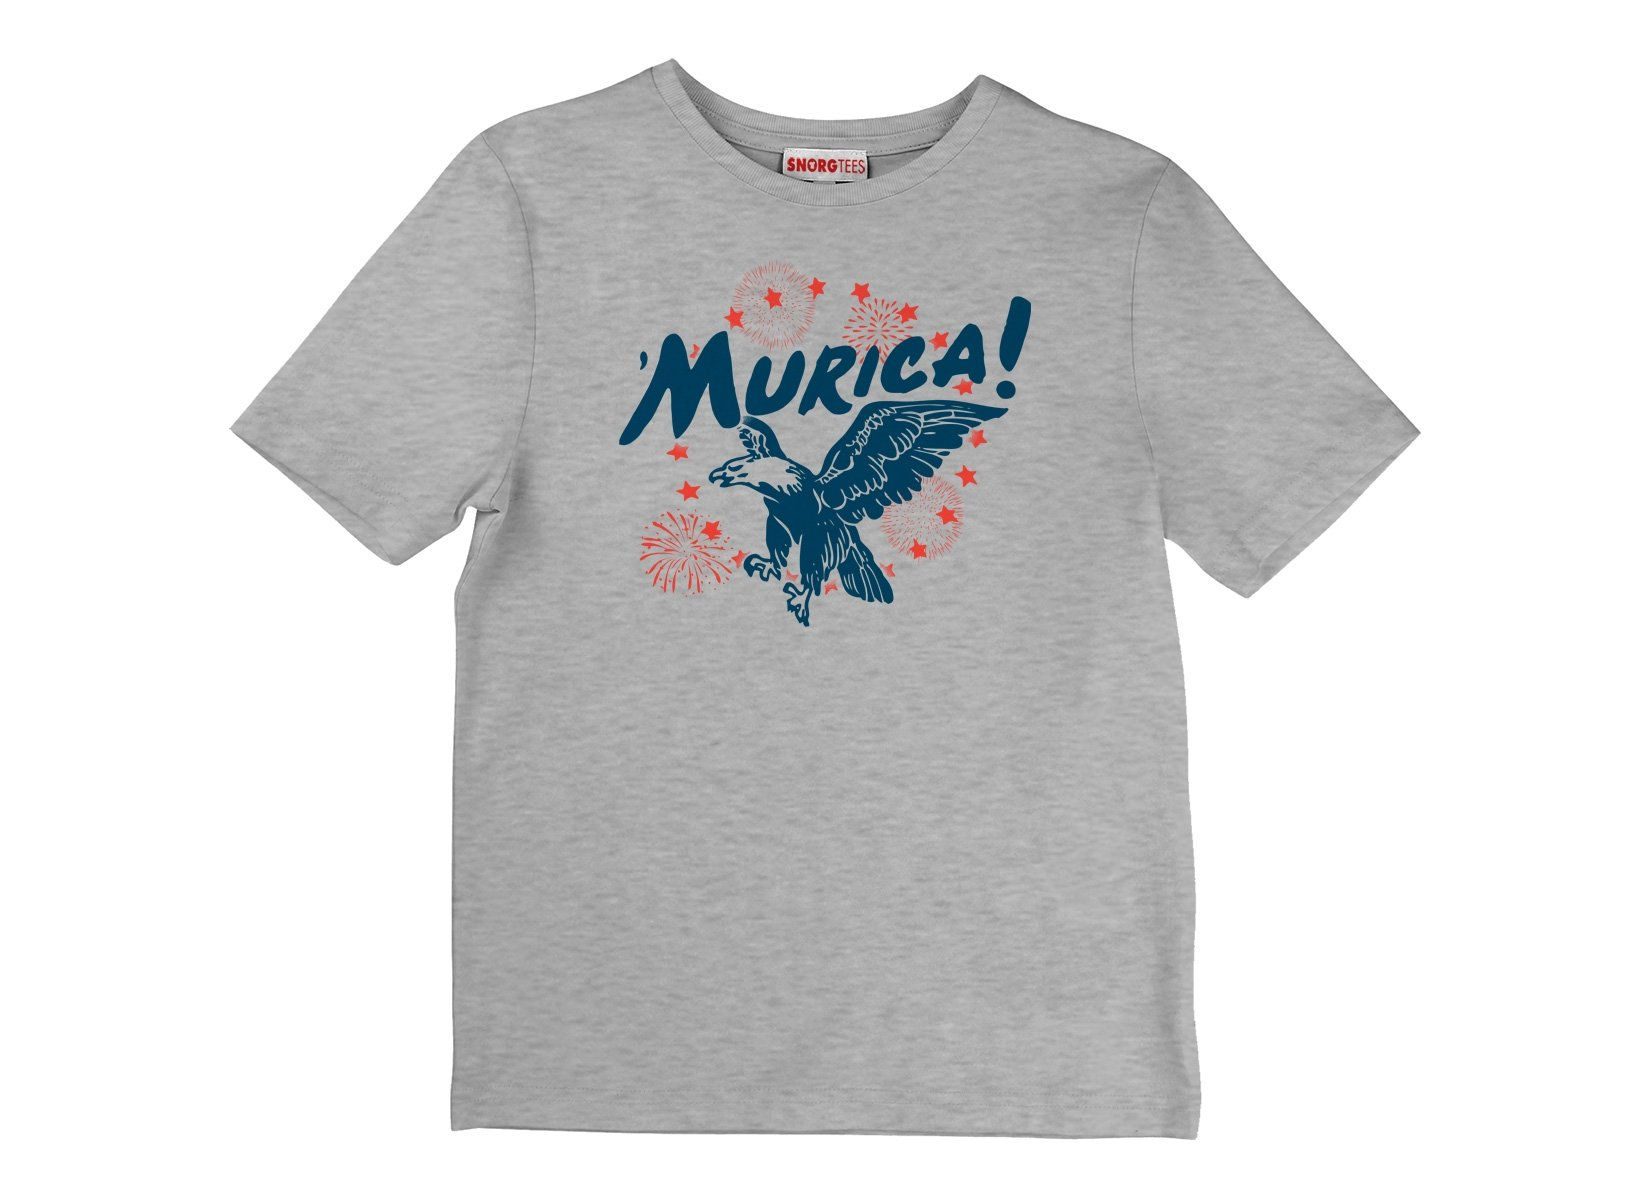 'Murica on Kids T-Shirt